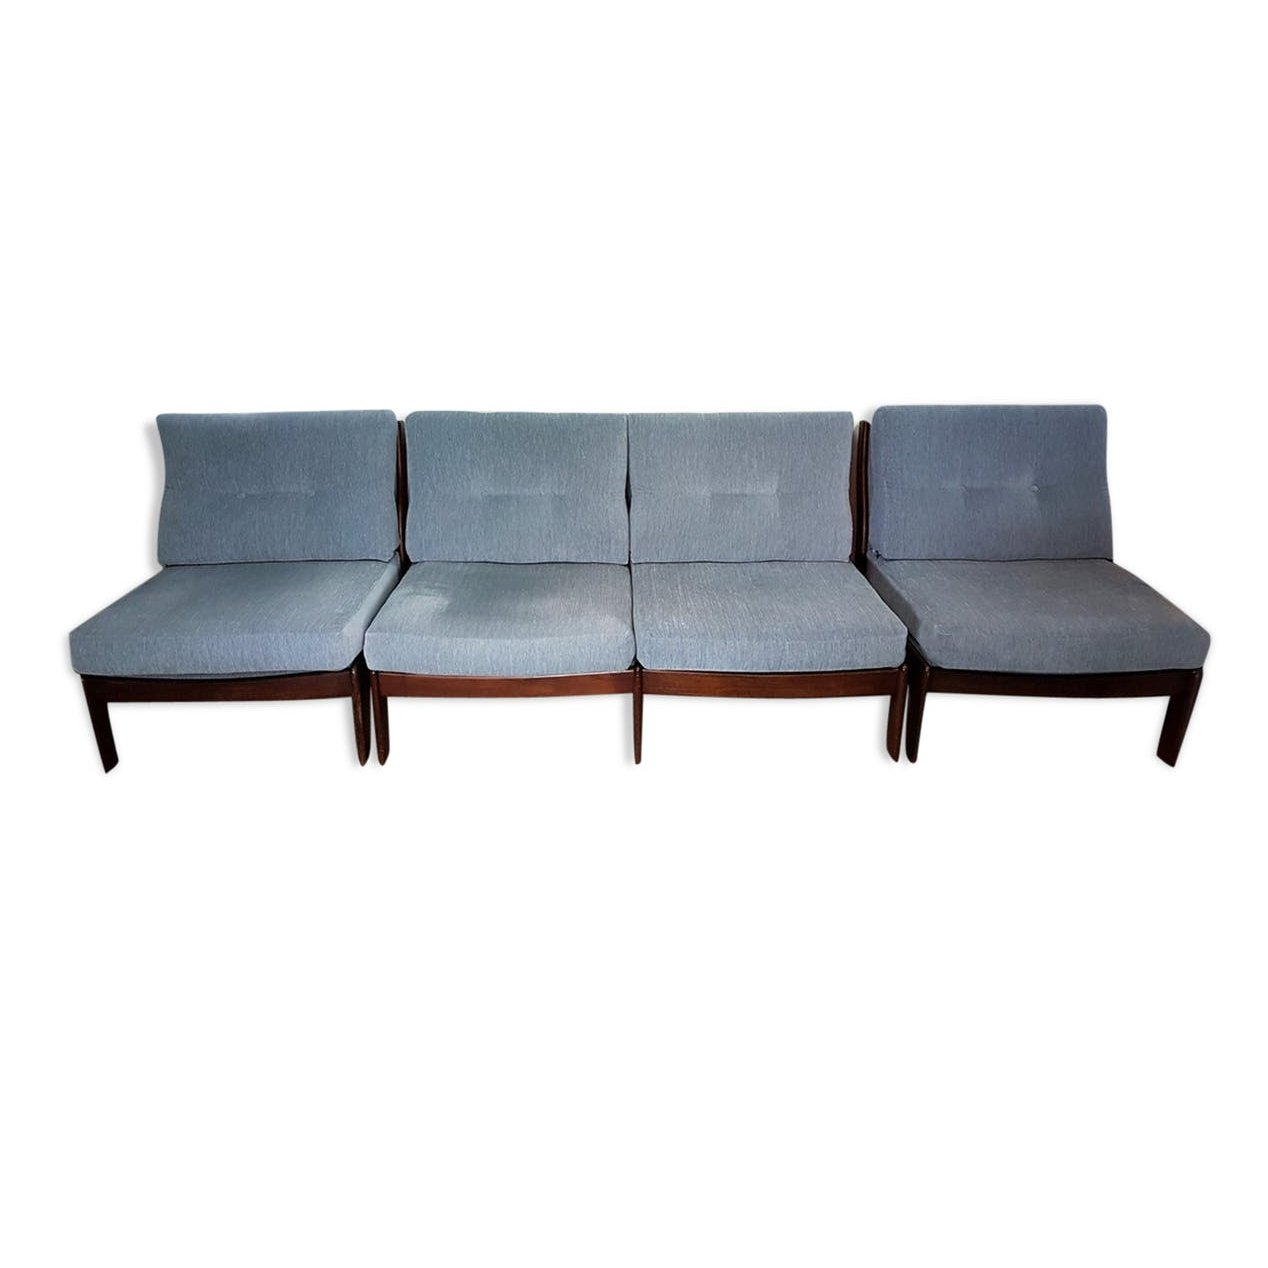 Attirant Danish Style Sofa U0026 Two Lounge Chairs In Petrol Fabric, 1960s